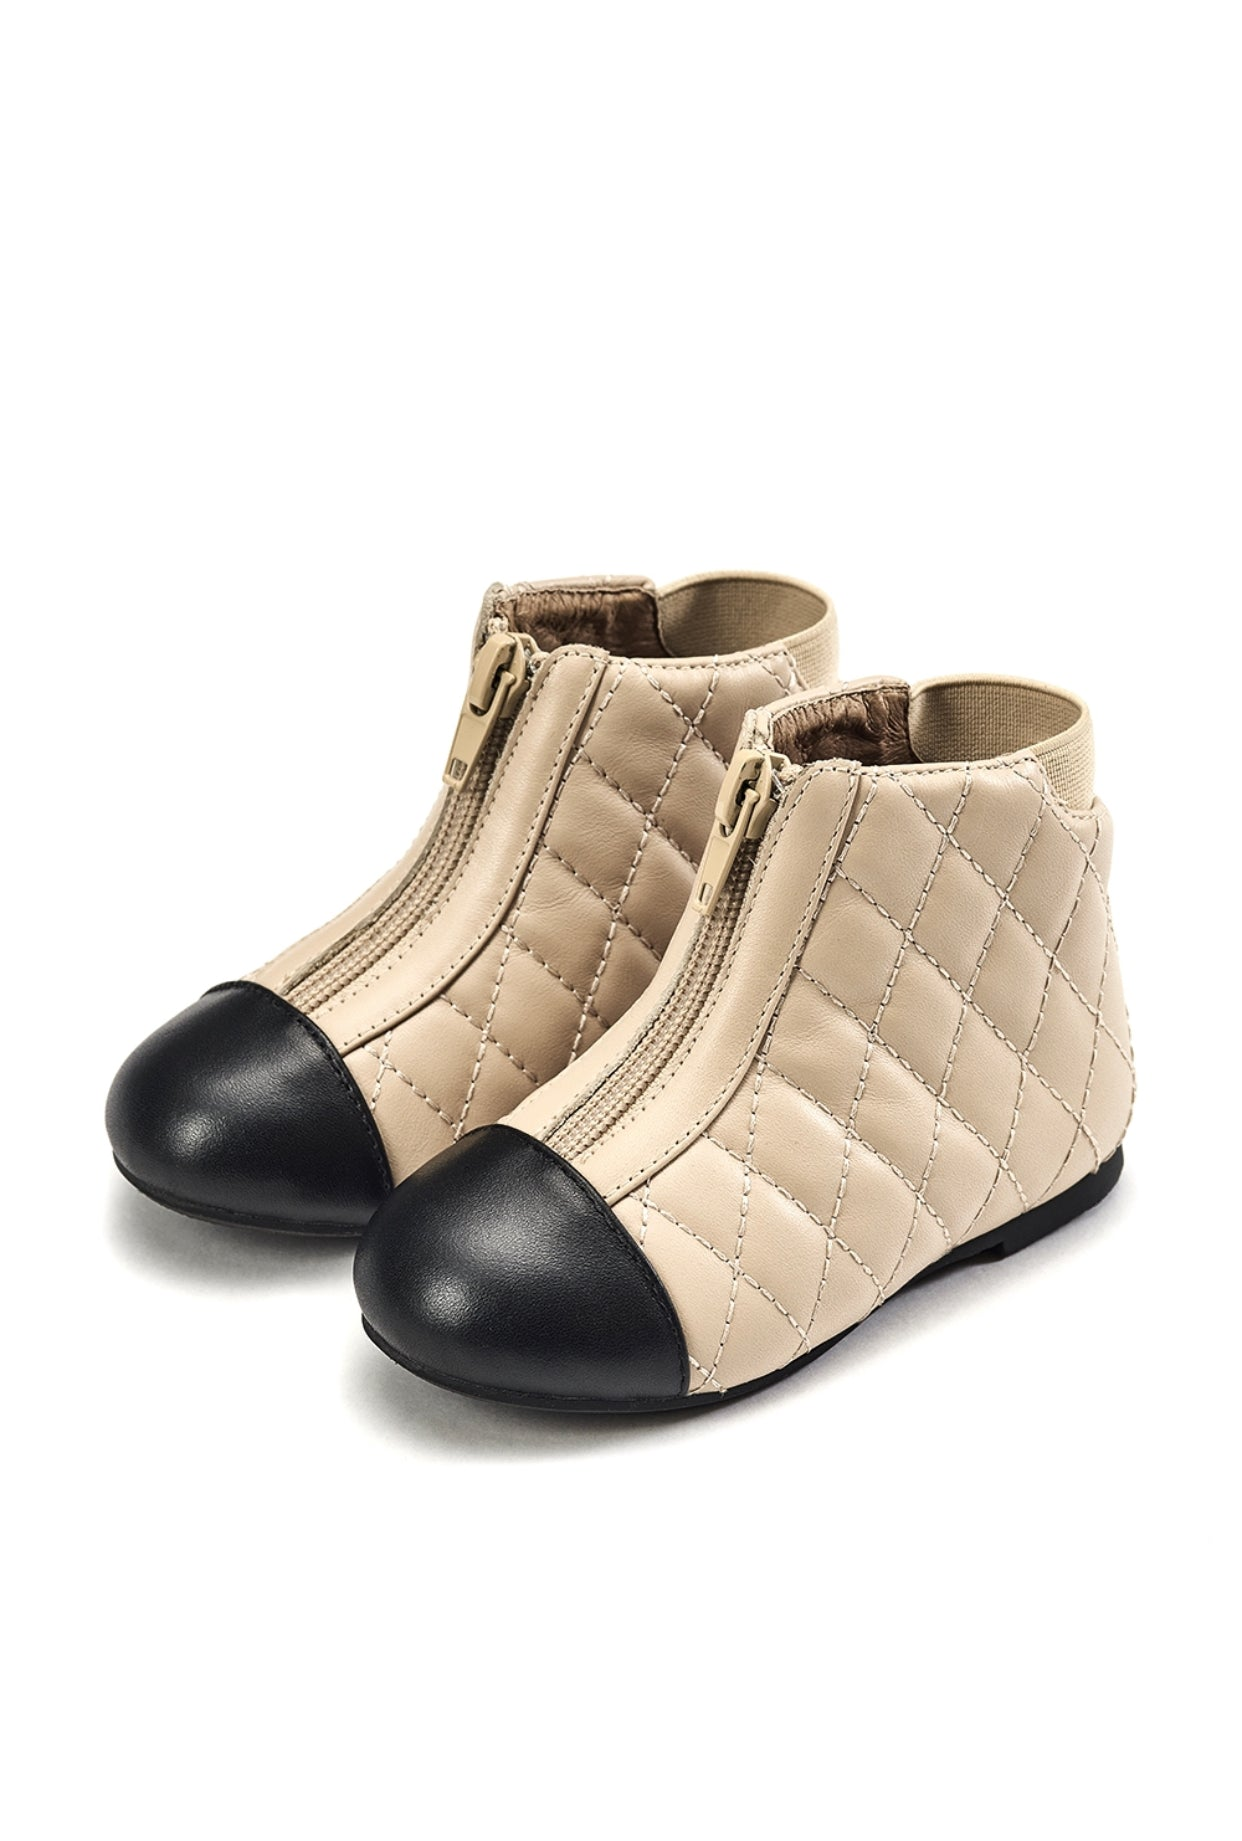 Age of Innocence Nicole boots in Beige/Black